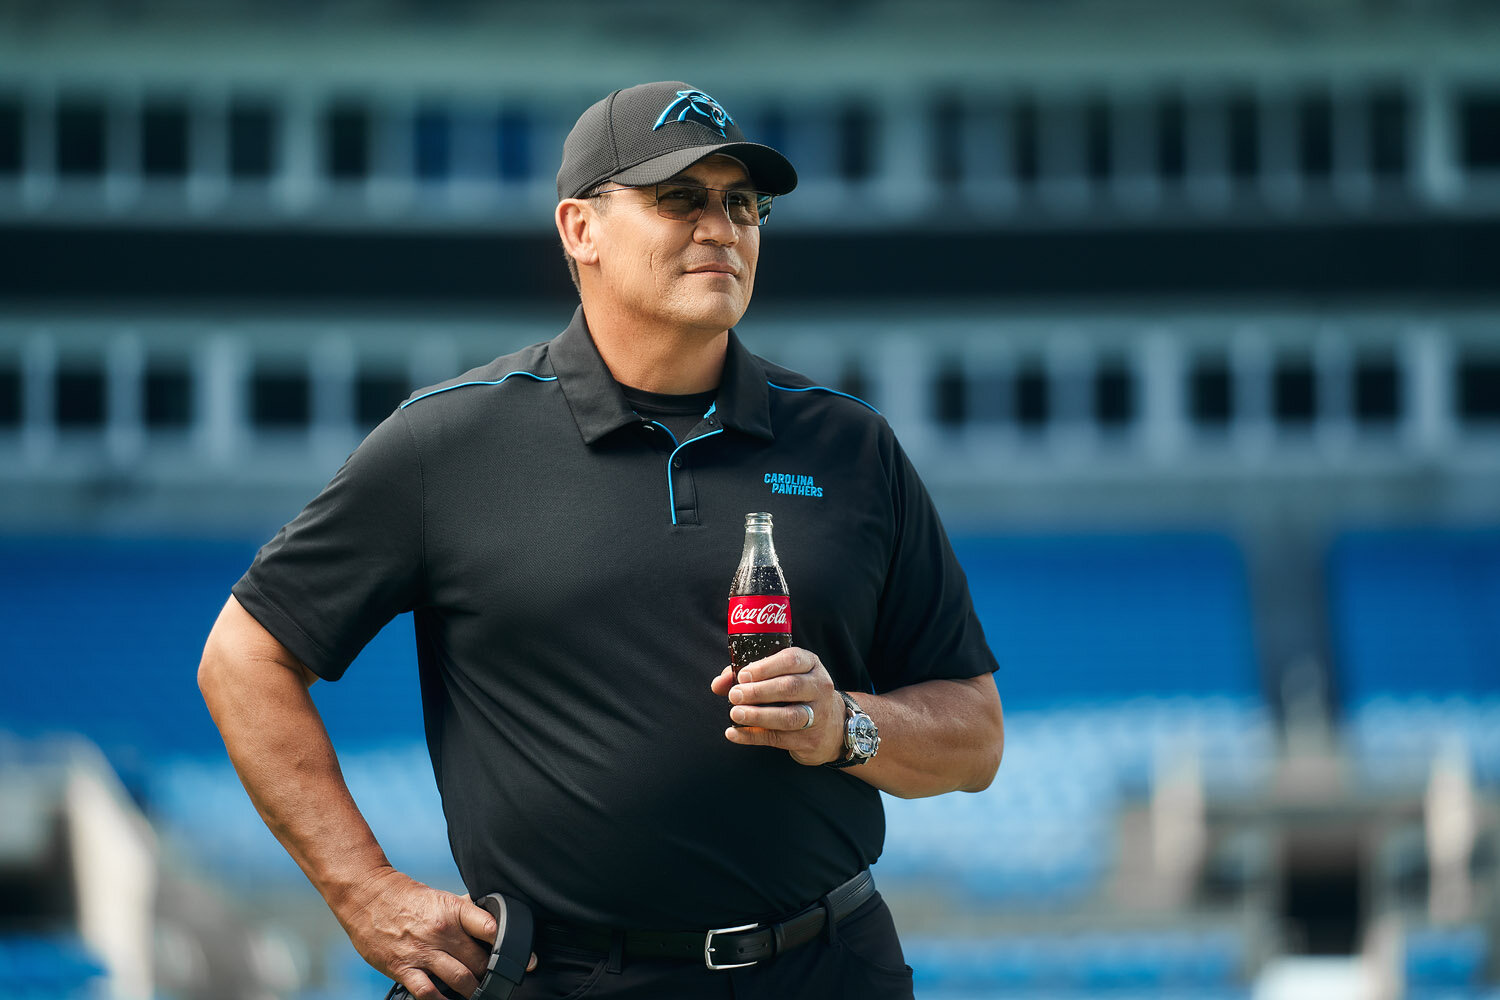 hales photo-coca-cola-carolina panthers-charlotte photography advertising marketing campaign production commercial editorial photographer atlanta-0024.jpg